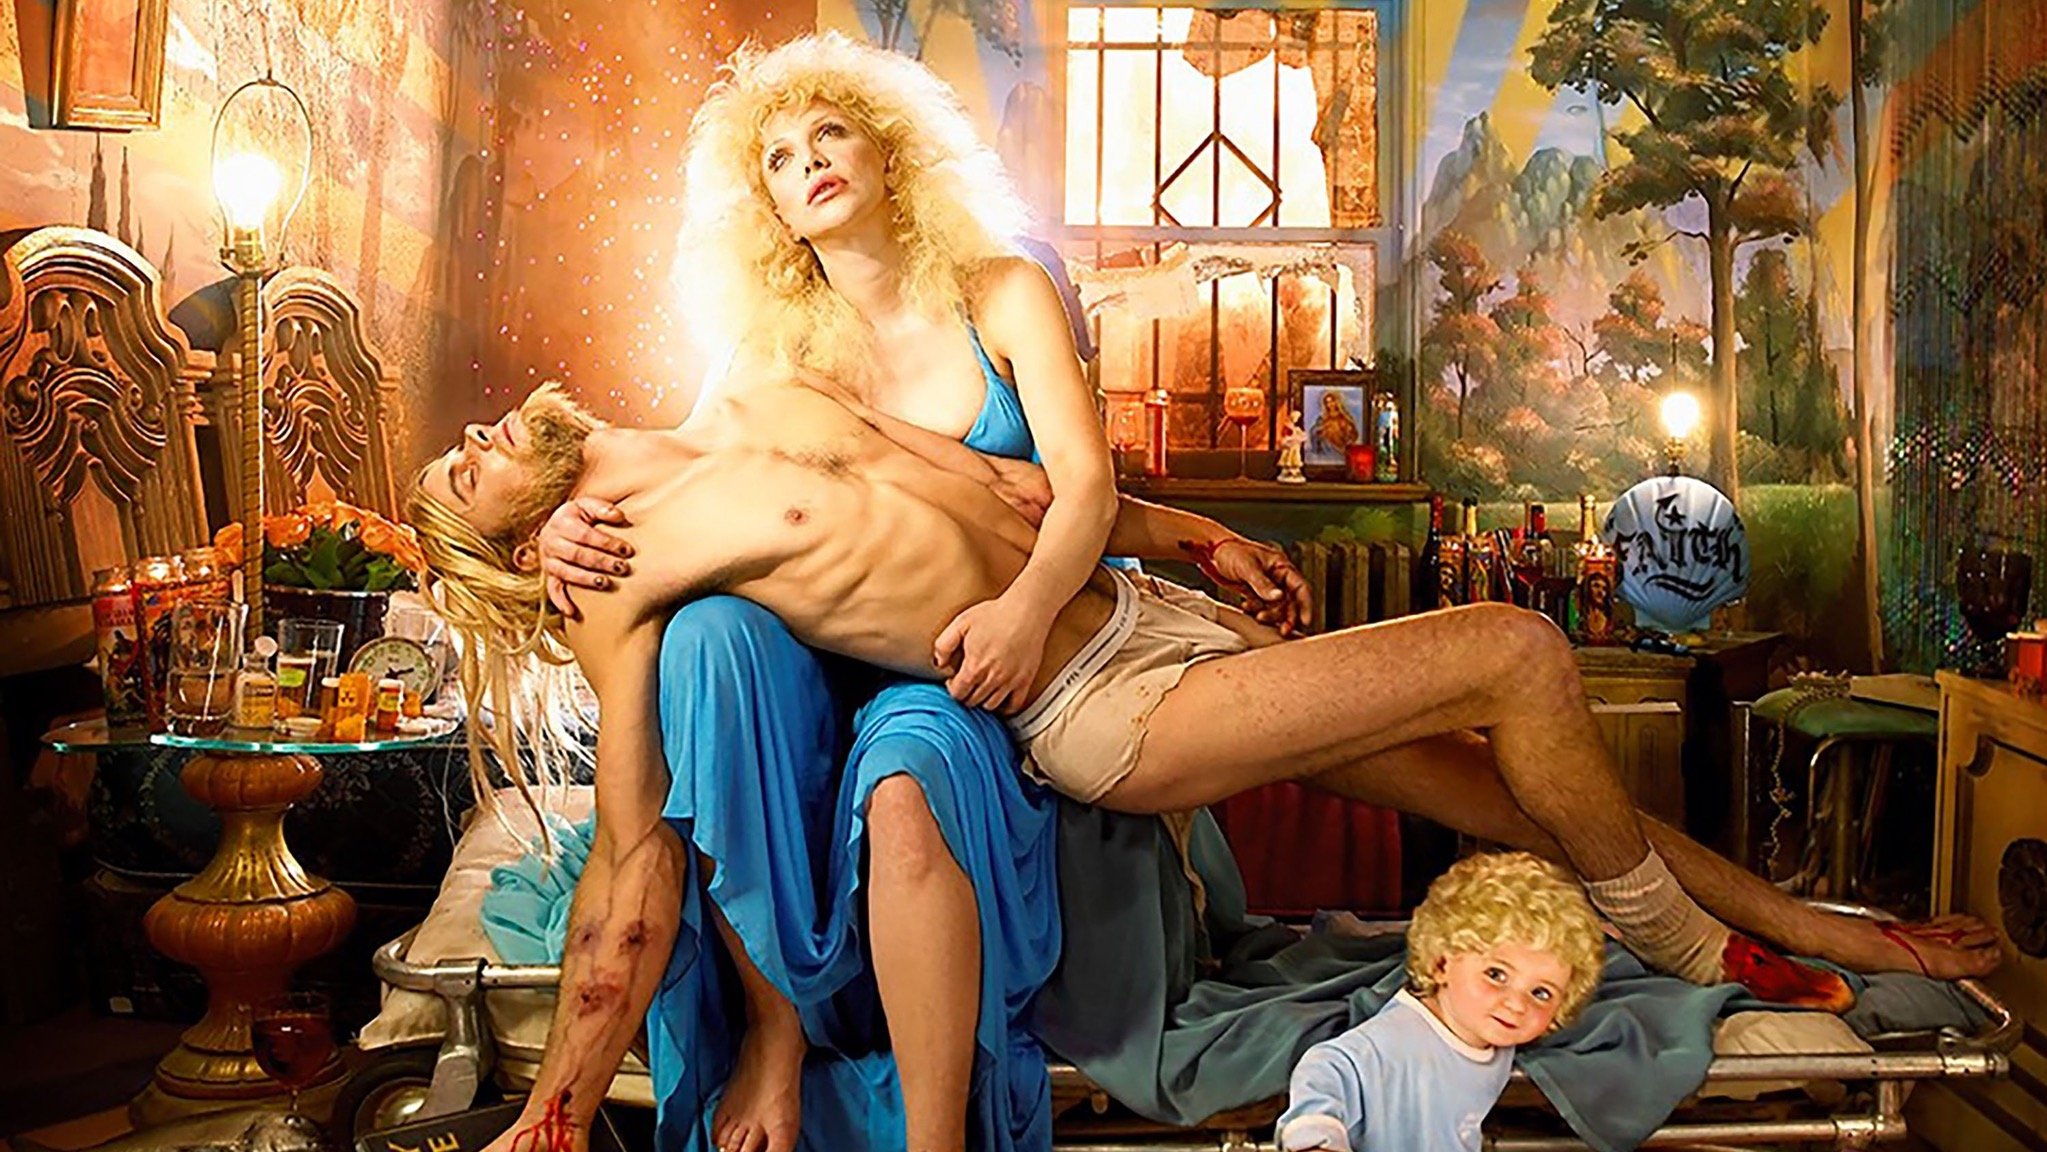 David LaChapelle, Courtney Love: Pieta, 2006